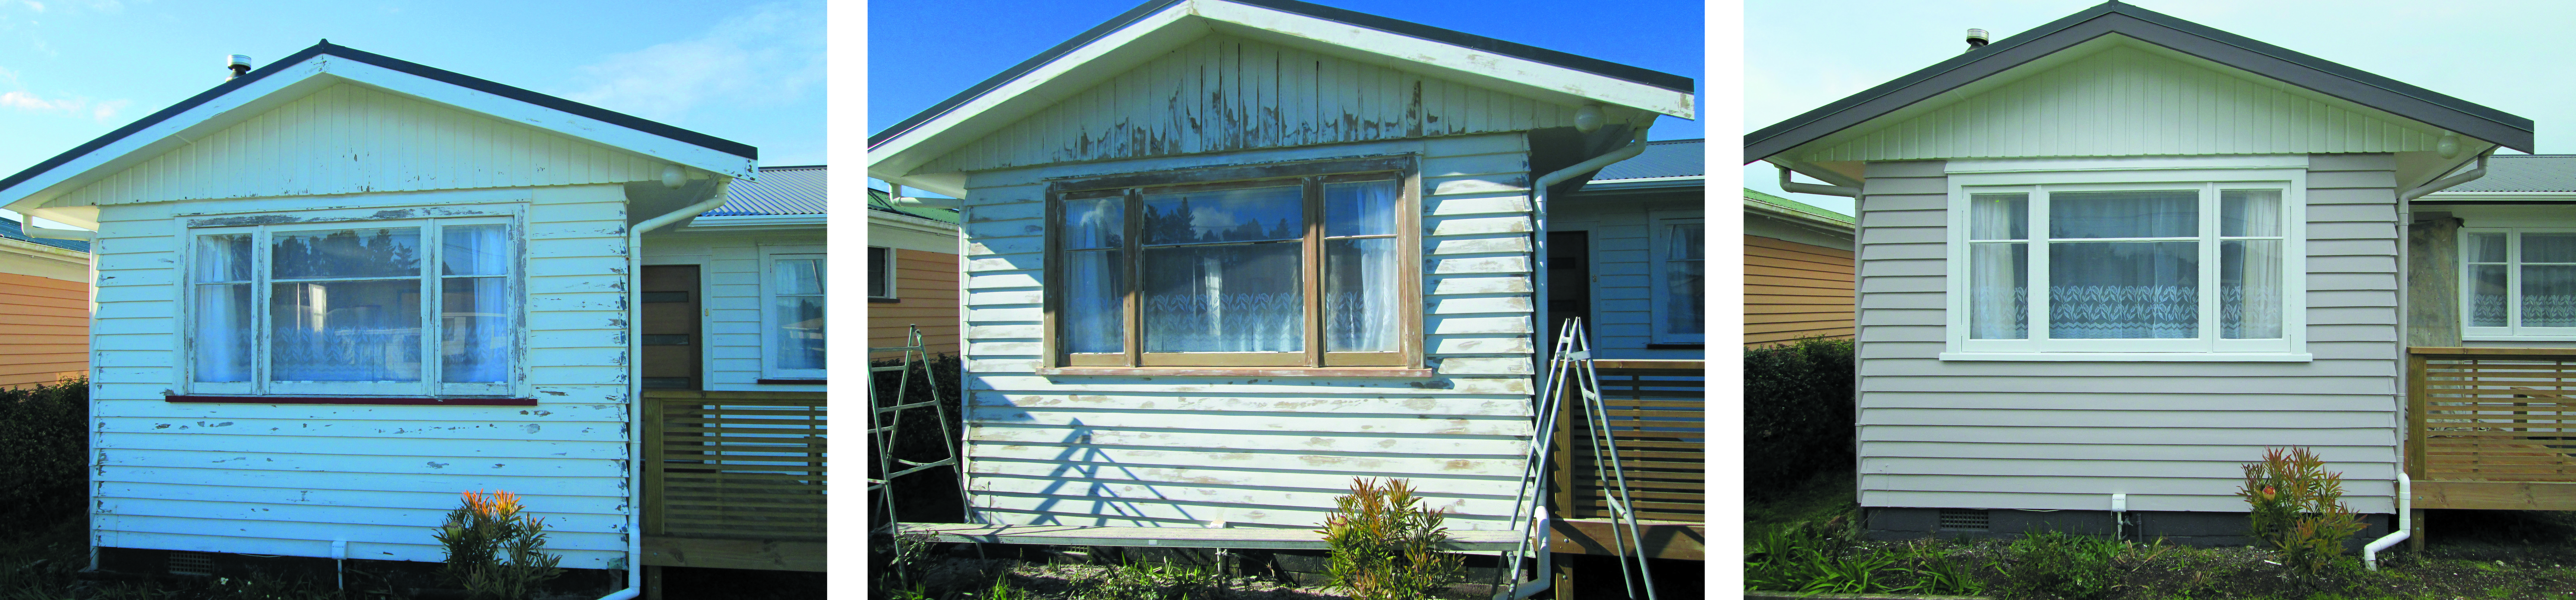 Before, during and after shots showing preparation work on house in Kaikohe by Wayne Webb Painters